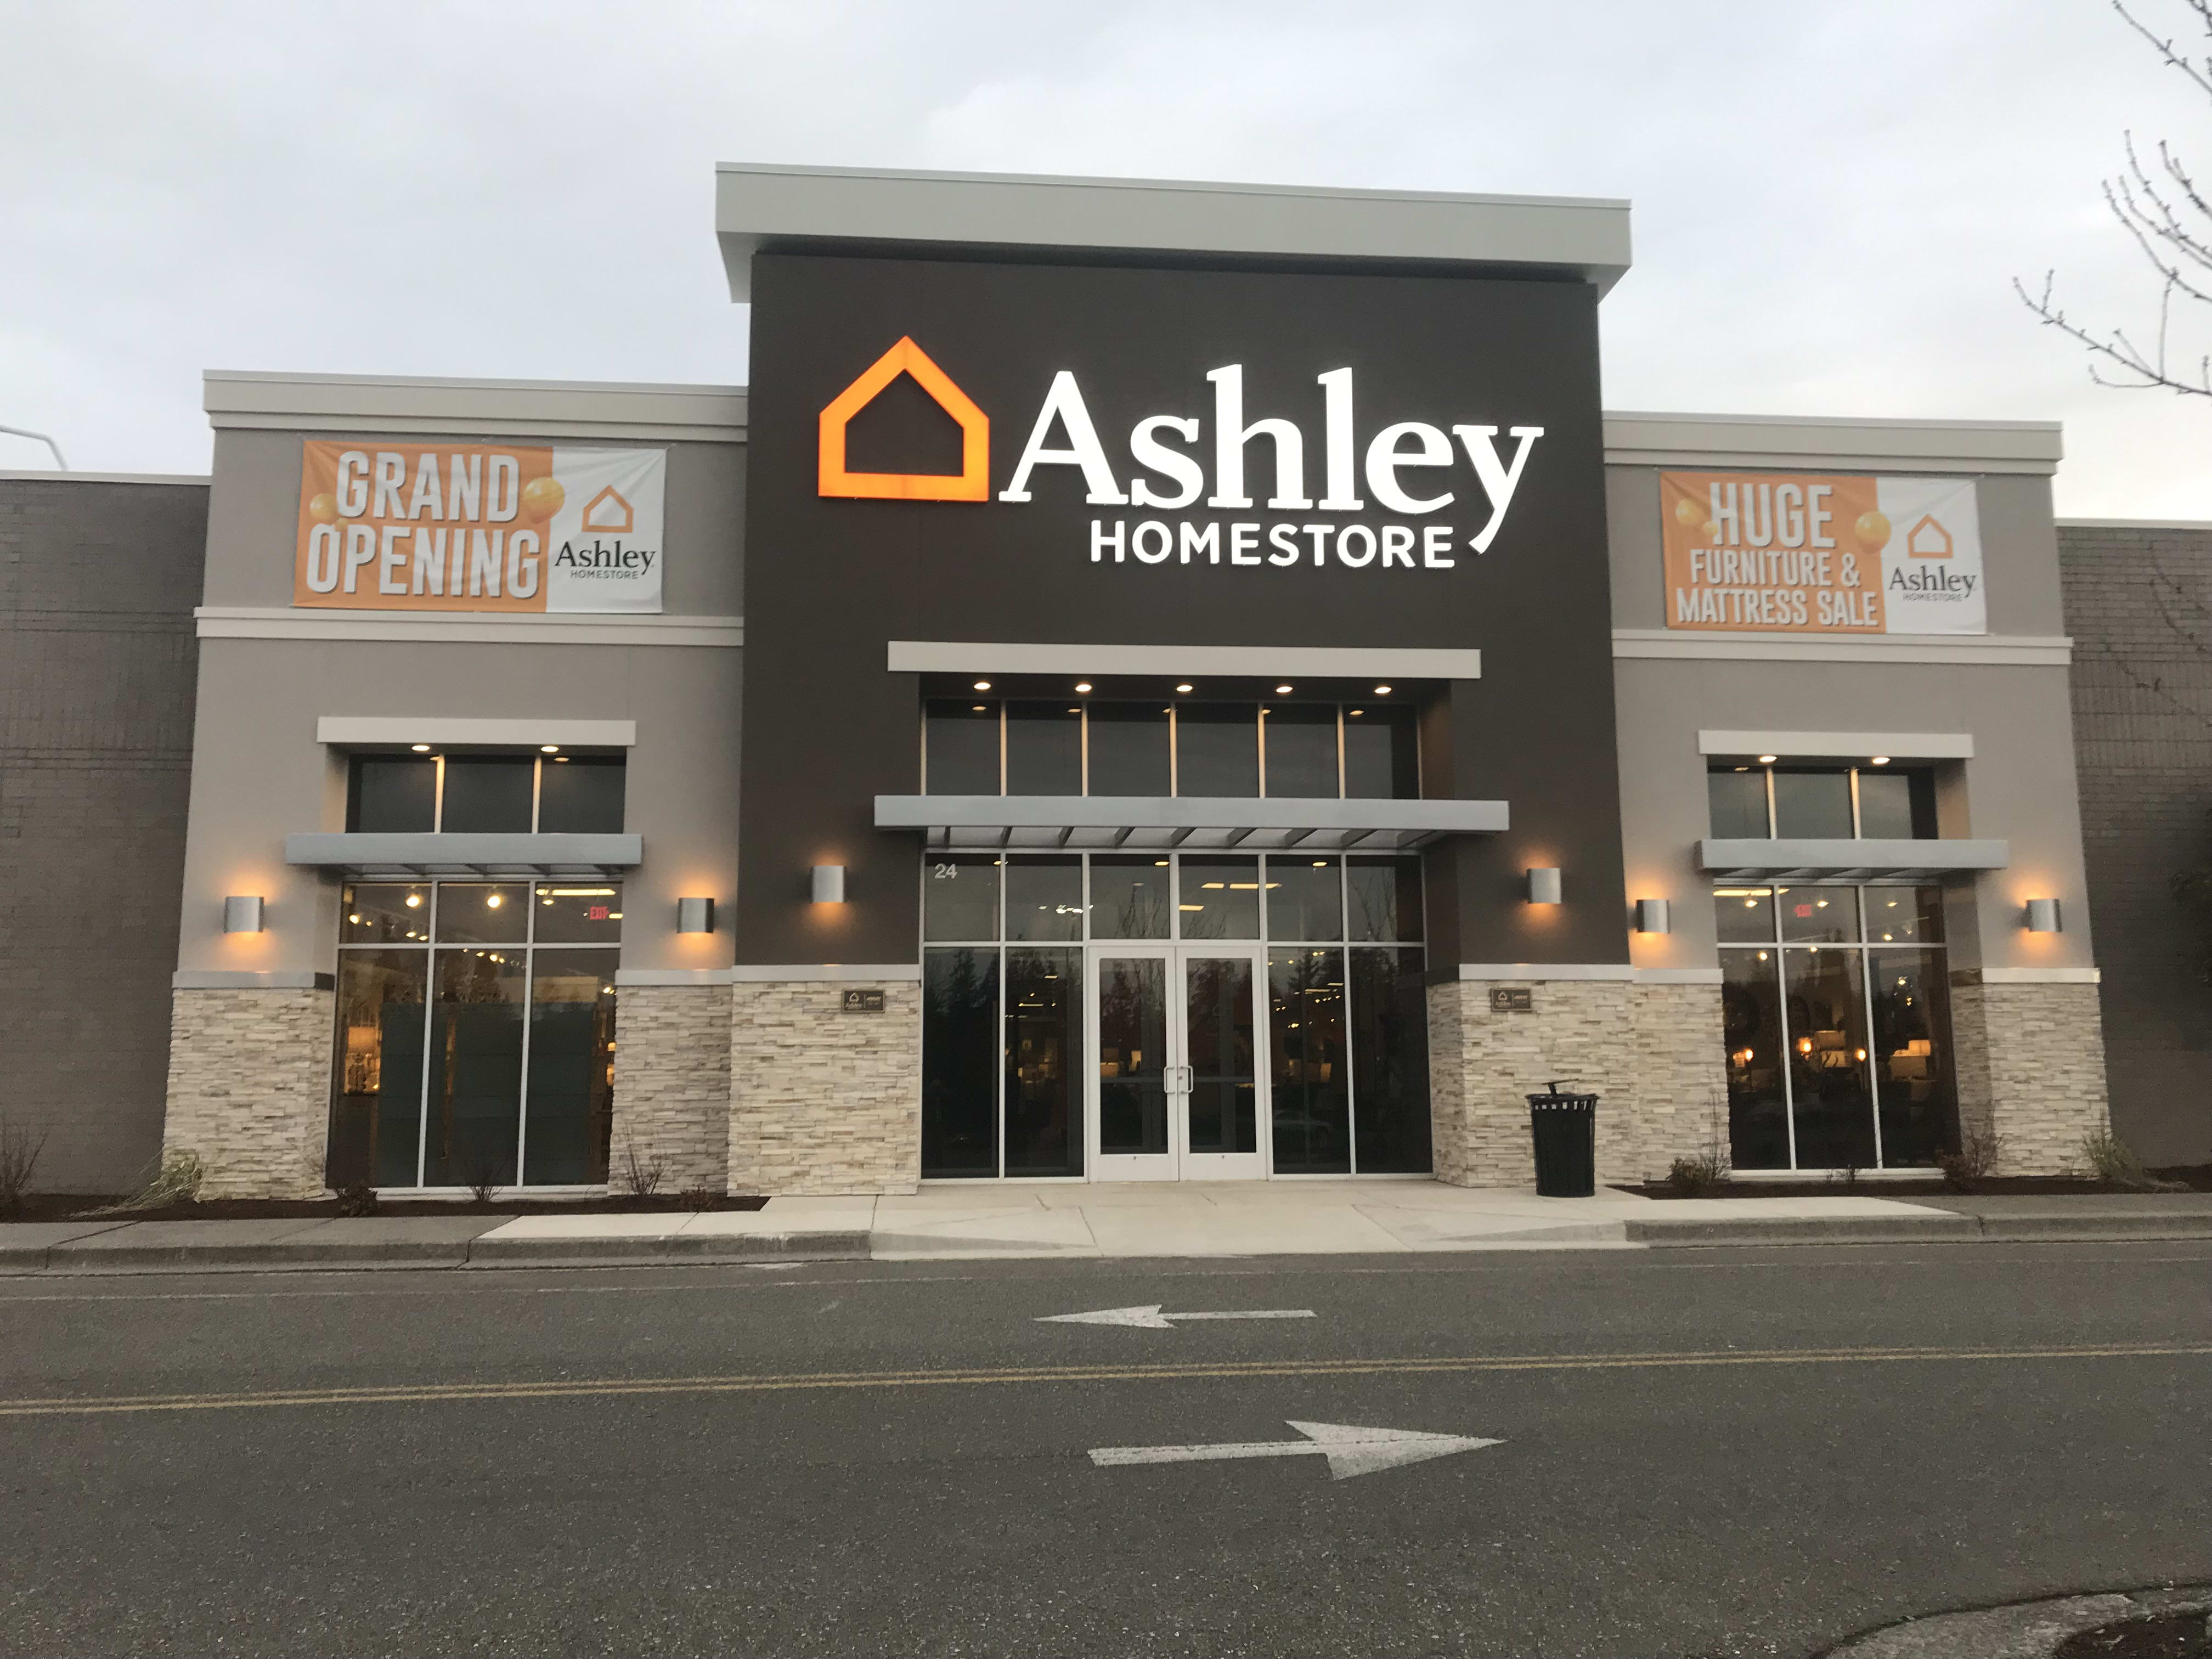 Incroyable Furniture And Mattress Store In Bellingham, WA   Ashley HomeStore 9000191300